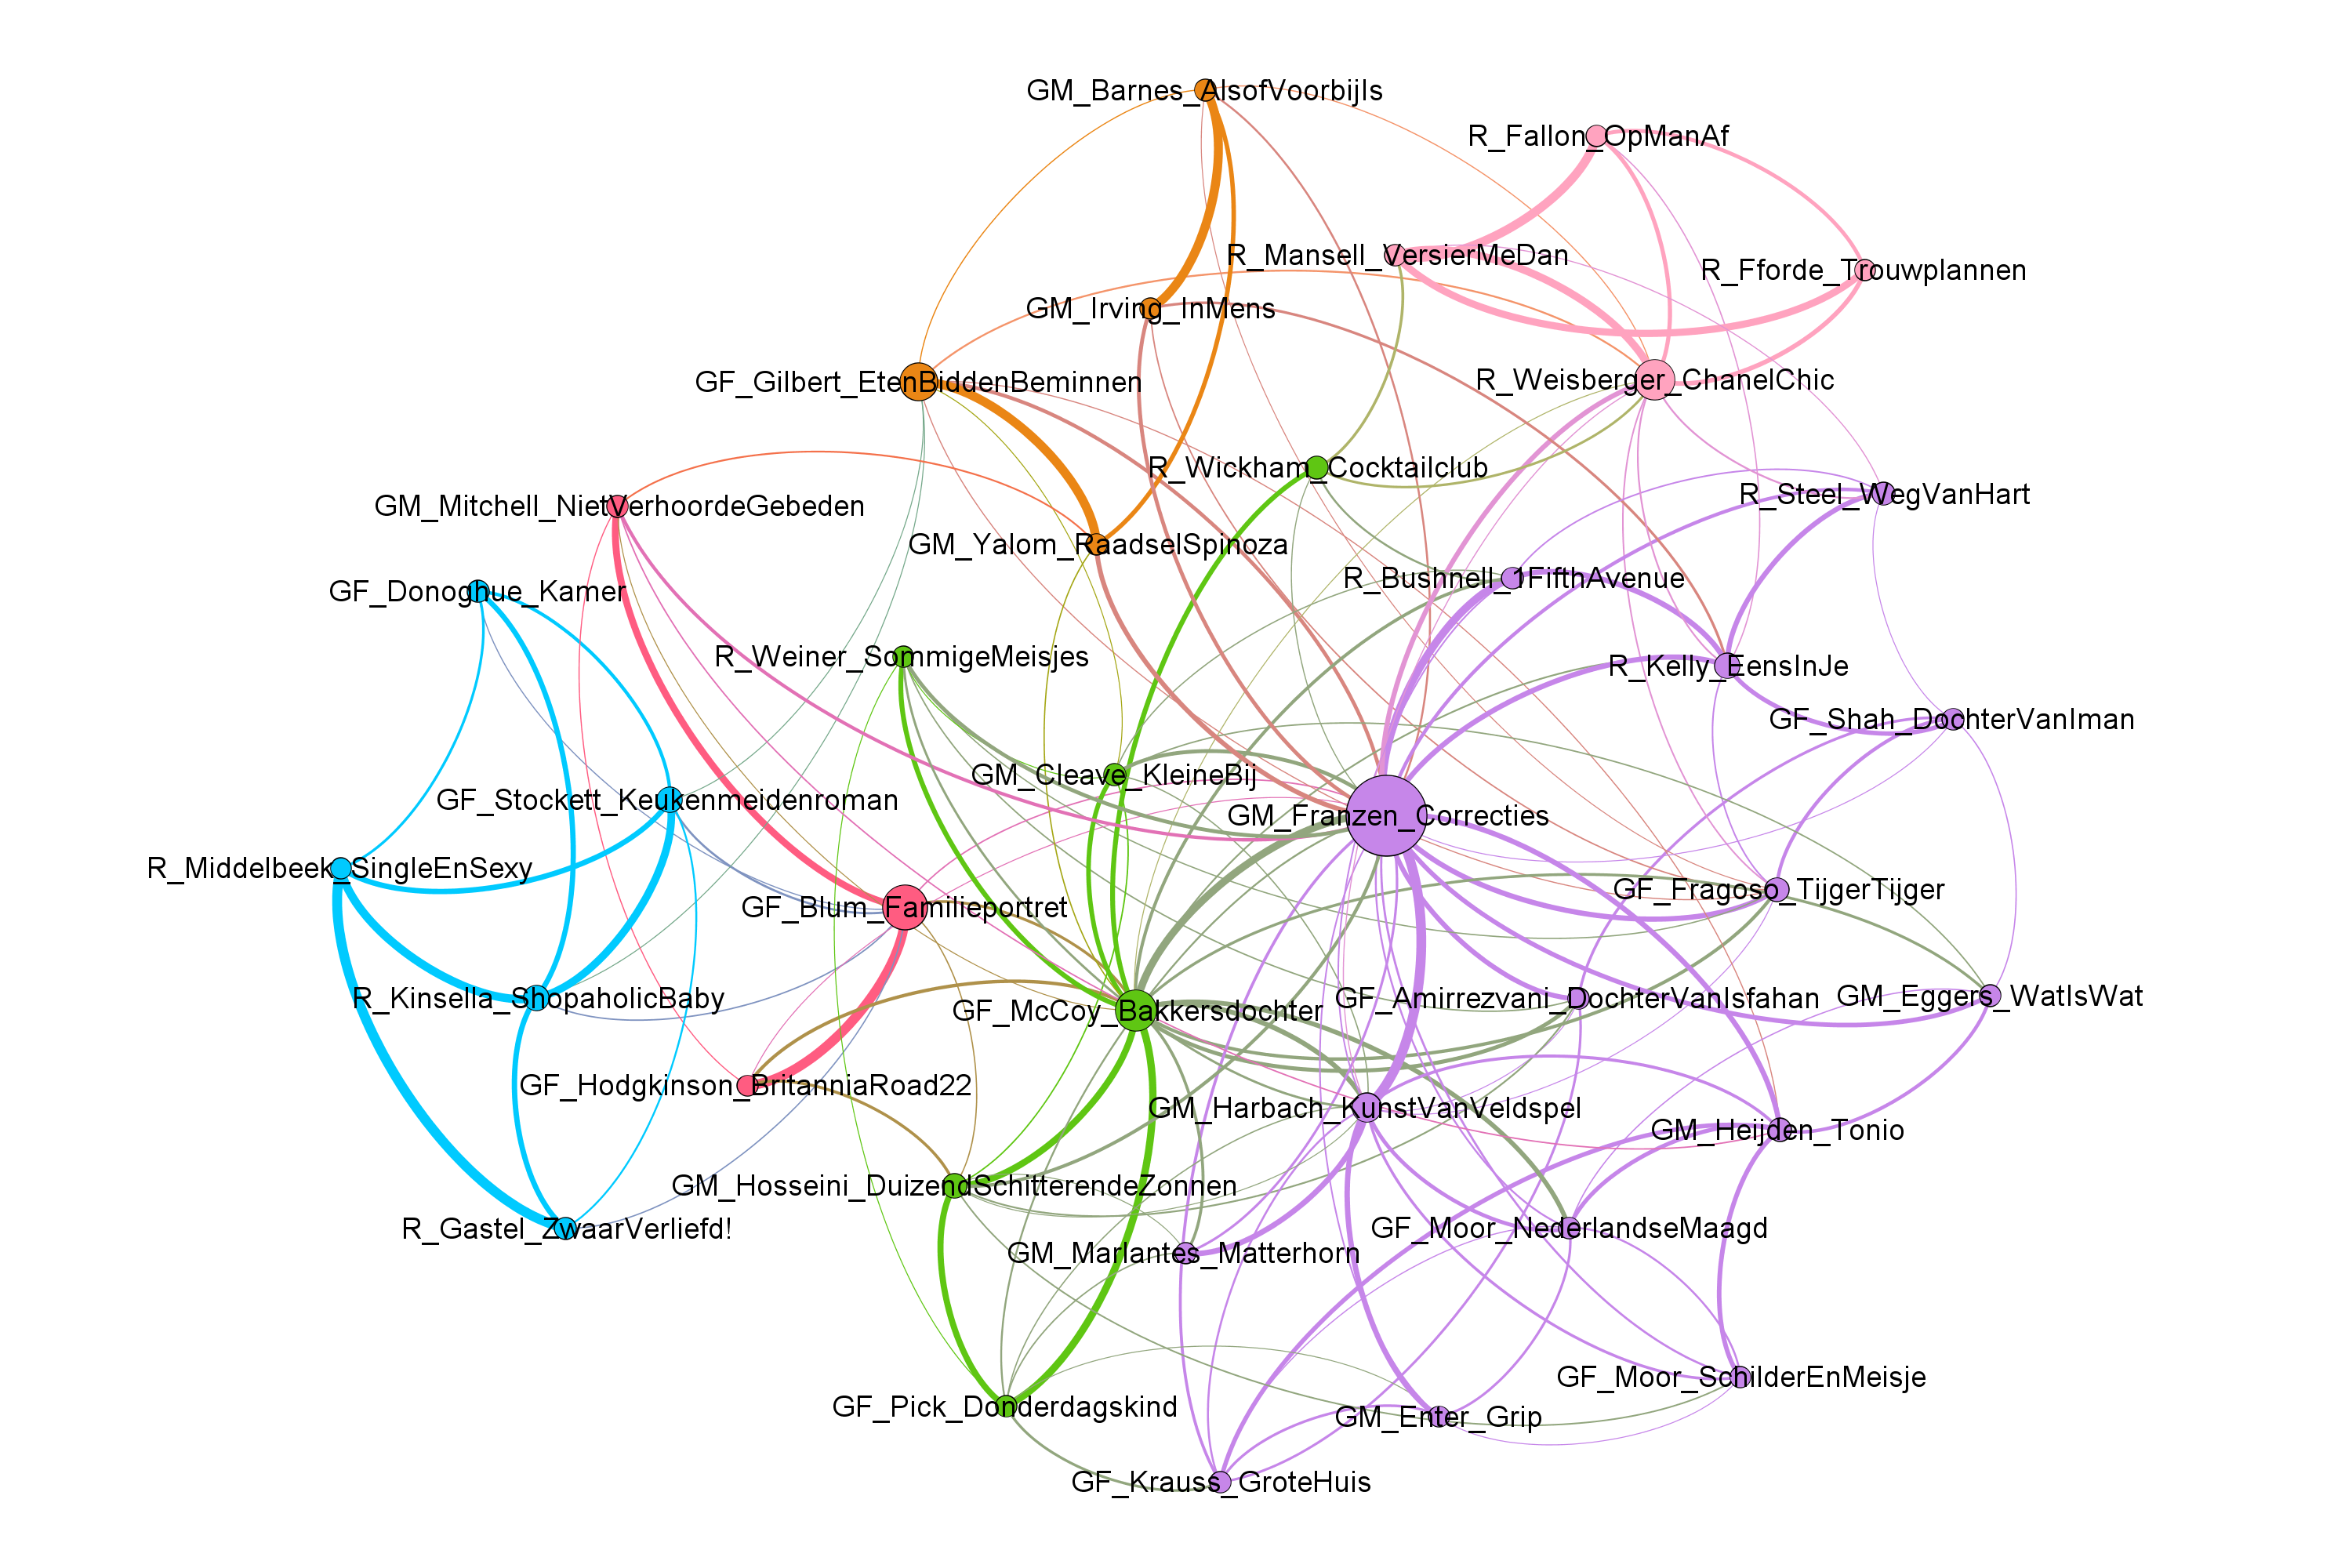 Network visualization of the novels' stylistic proximity (R = romantic, GF = general fiction/female author, GM = general fiction/male author). Colors indicate groupings based on modularity